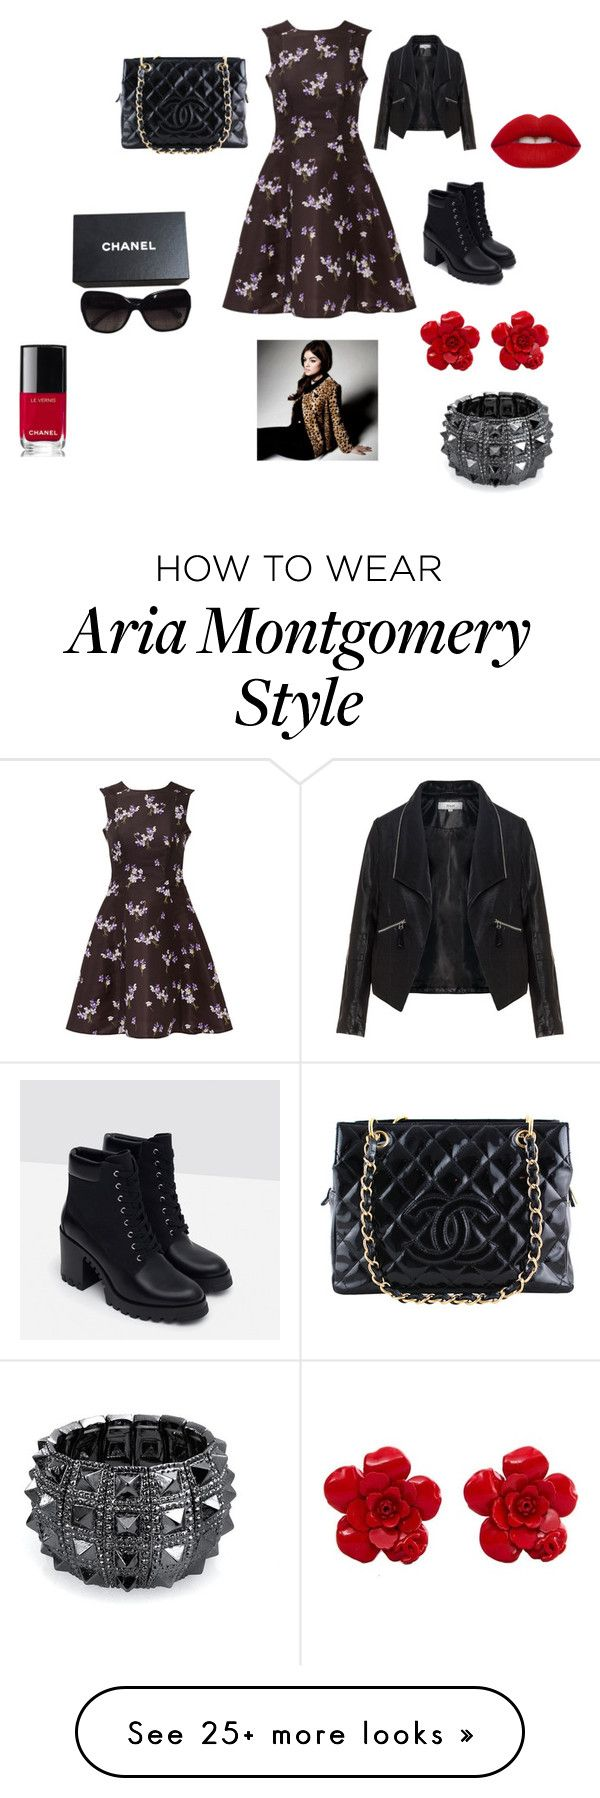 """Aria Montgomery Outfit"" by jessicaloredana on Polyvore featuring RED Valentino, Zizzi, Zara, Chanel, Bling Jewelry and Lime Crime"